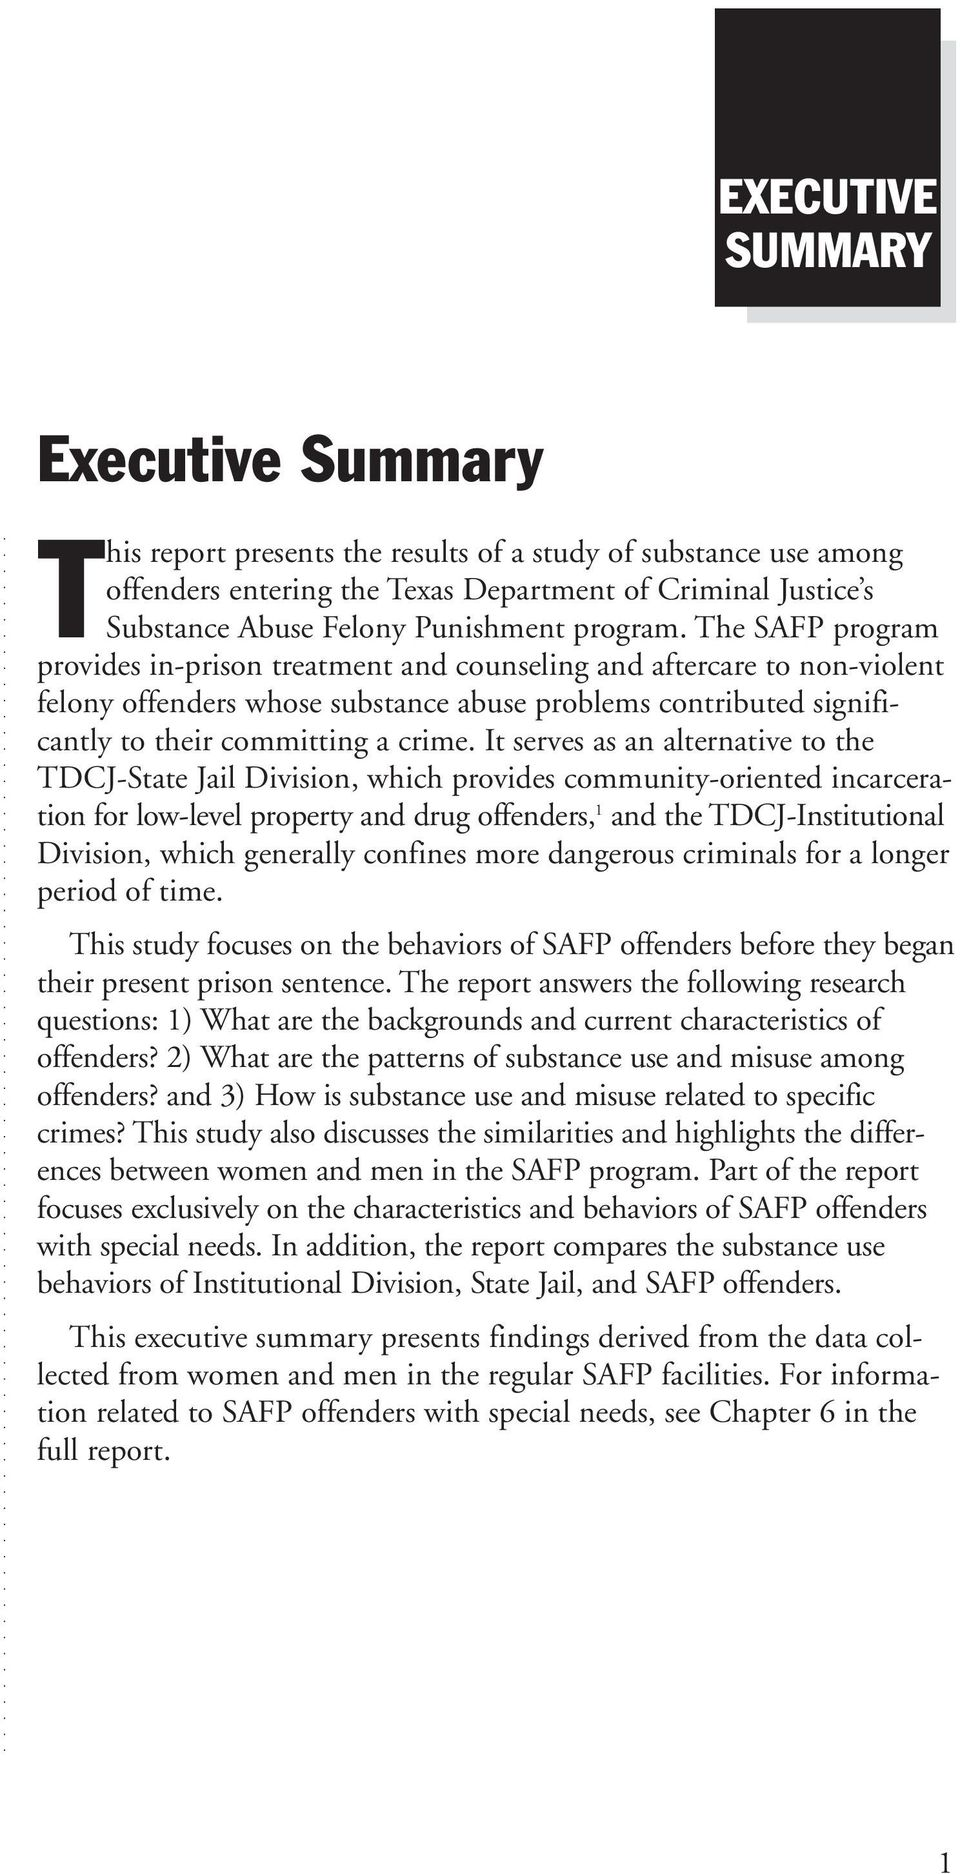 The SAFP program provides in-prison treatment and counseling and aftercare to non-violent felony offenders whose substance abuse problems contributed significantly to their committing a crime.